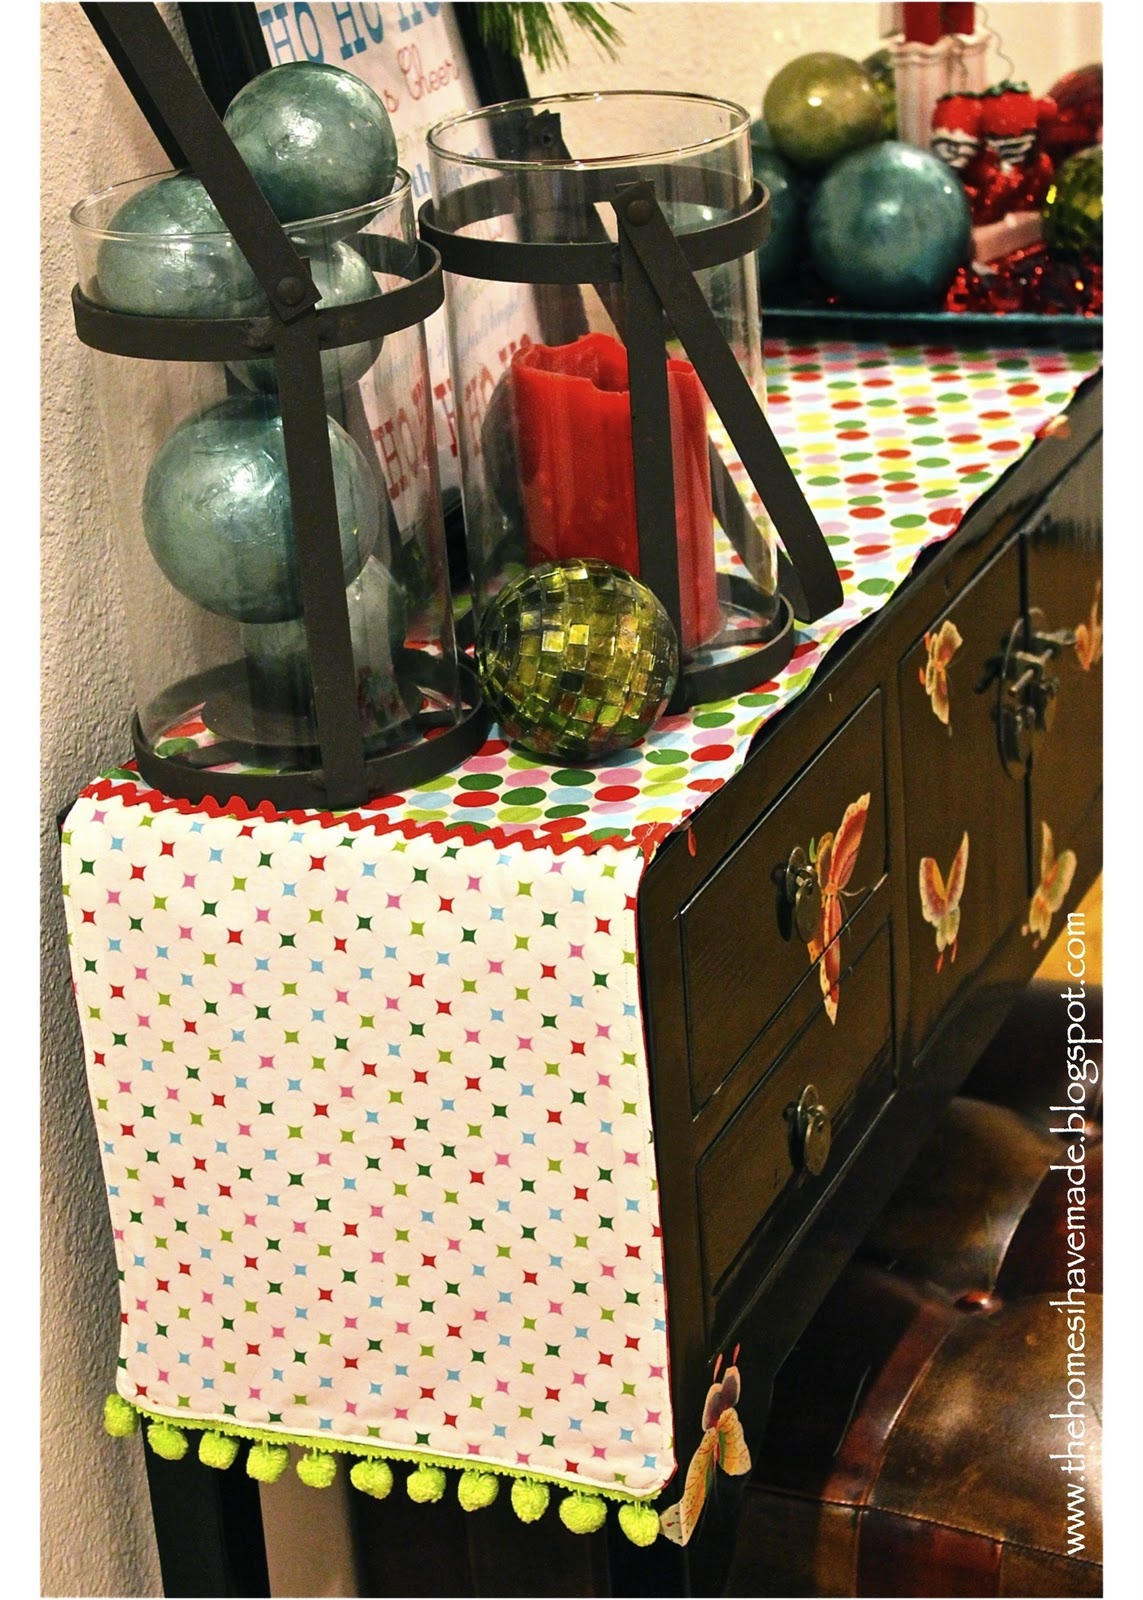 Sofa Table Runners Sears Console Runner And Holiday Quotmantel Quot The Homes I